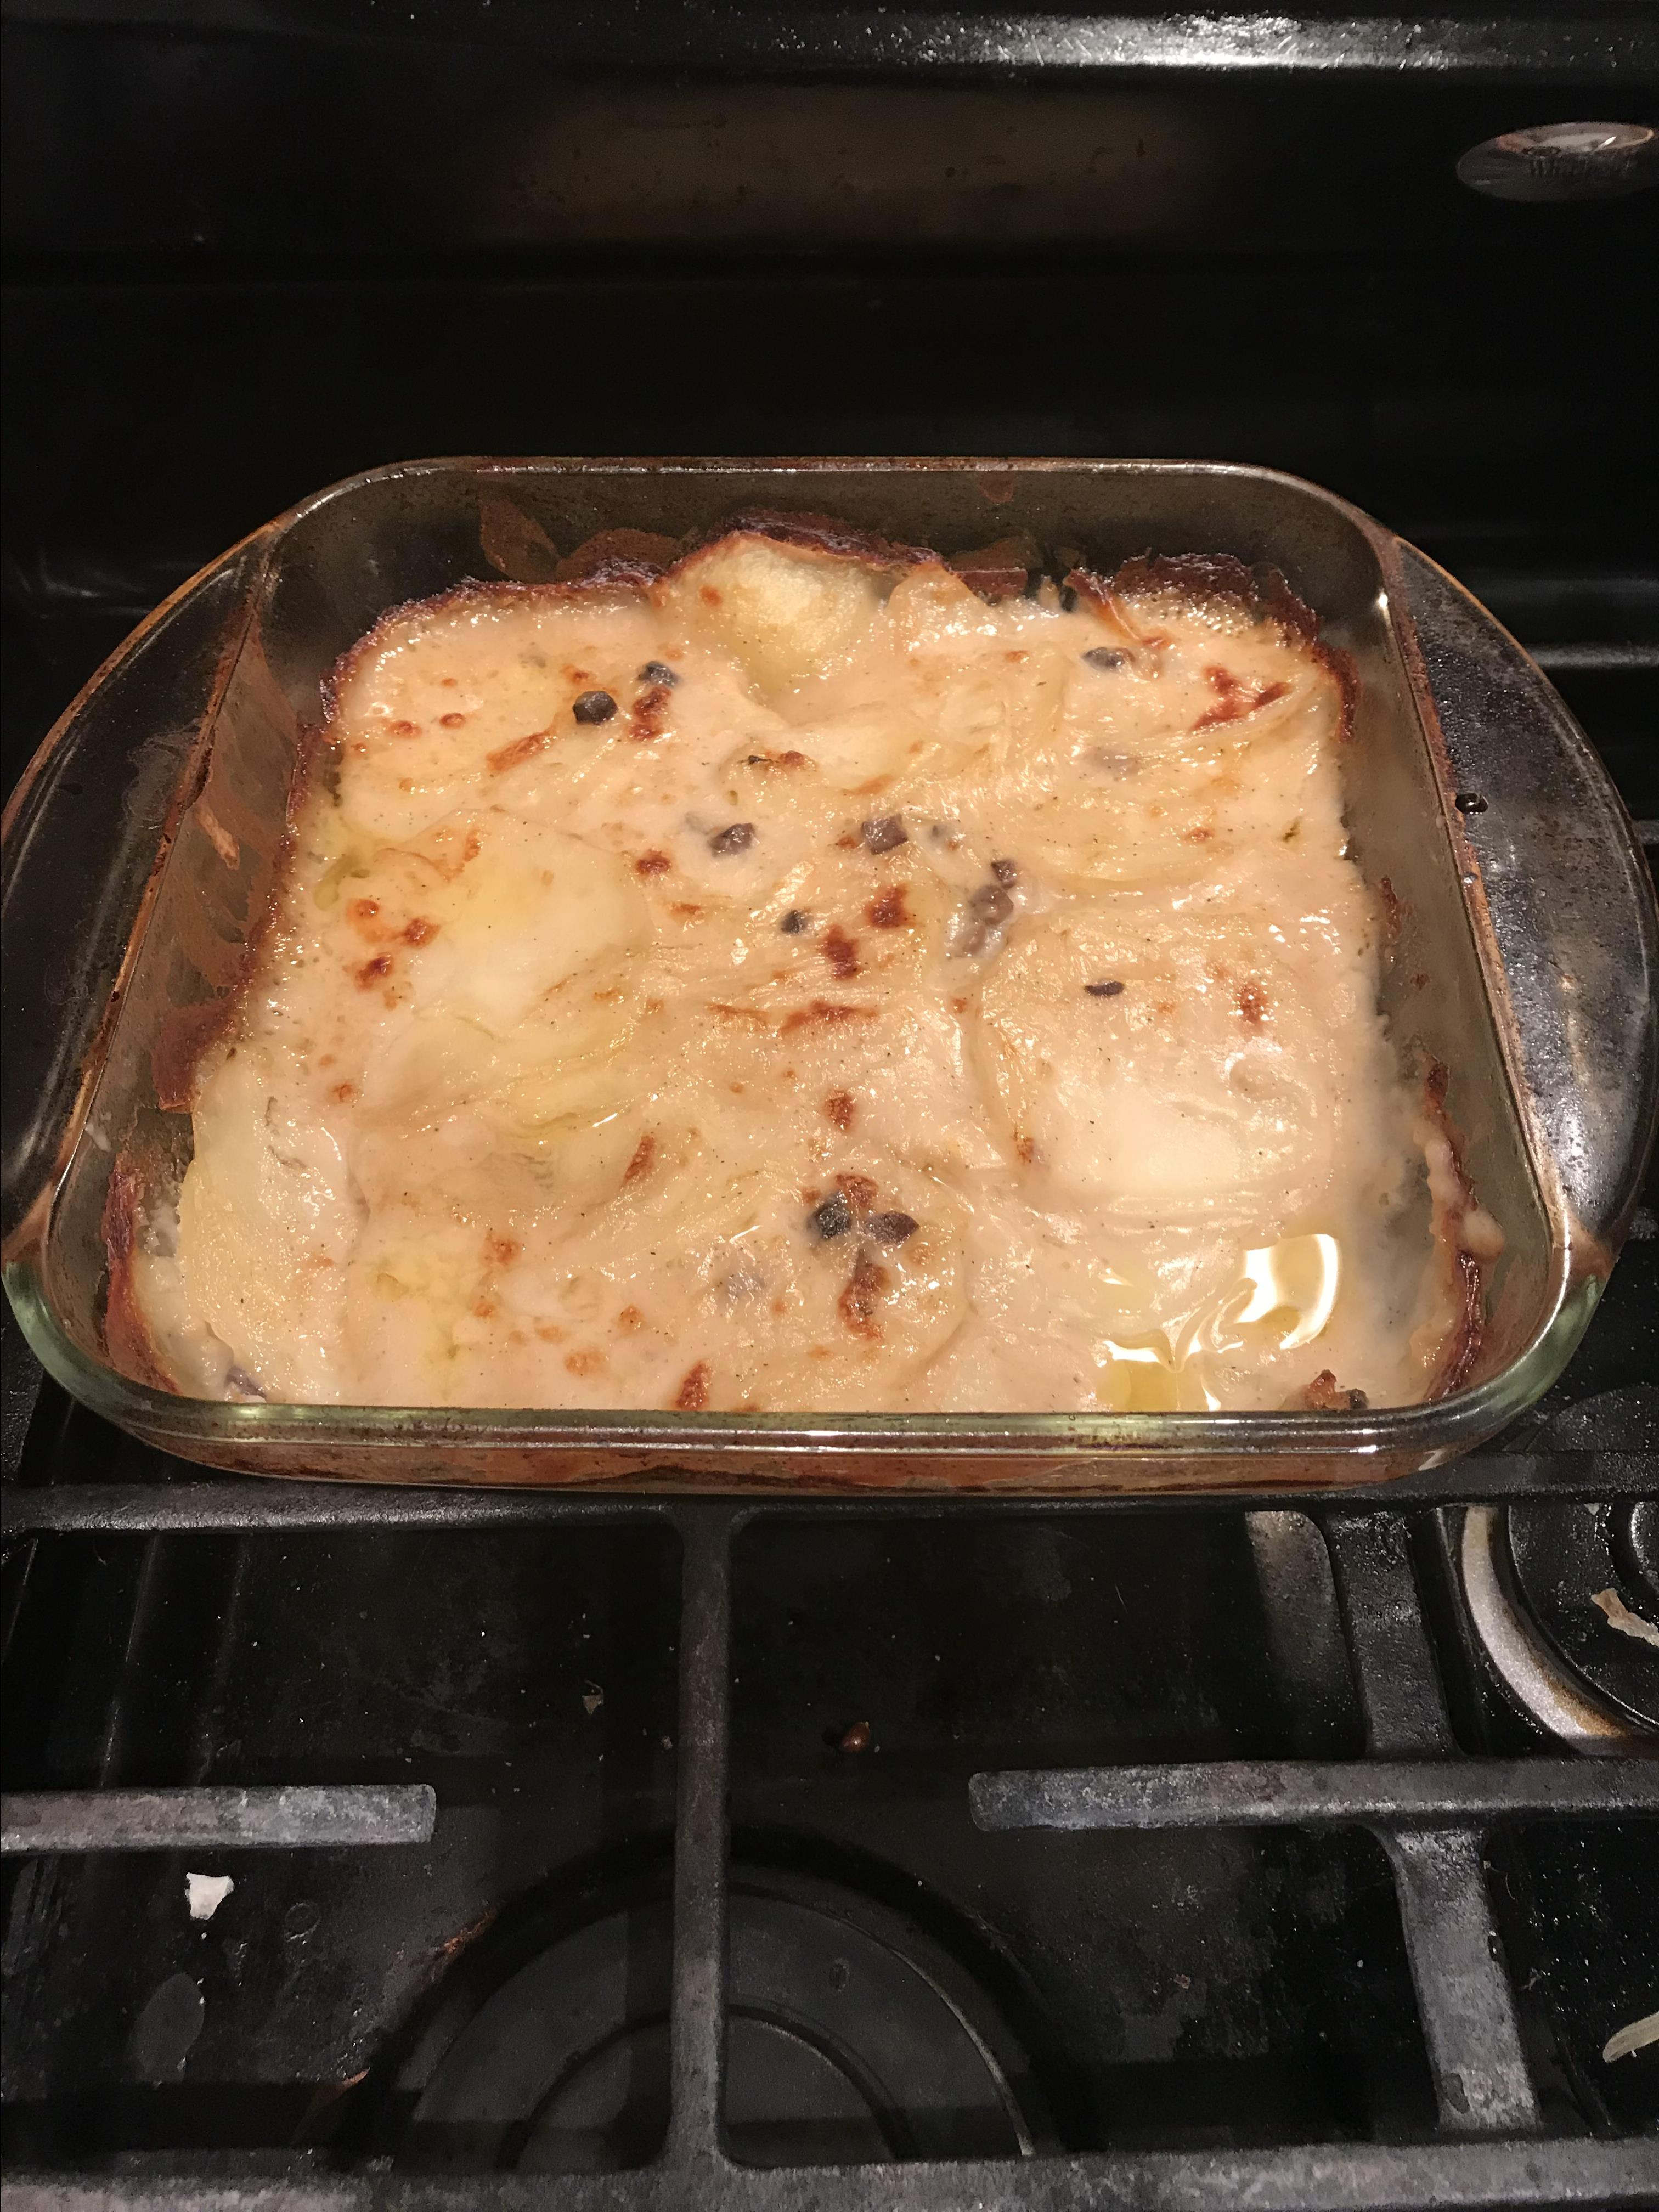 Mom's Red Scalloped Potatoes jaquelynny